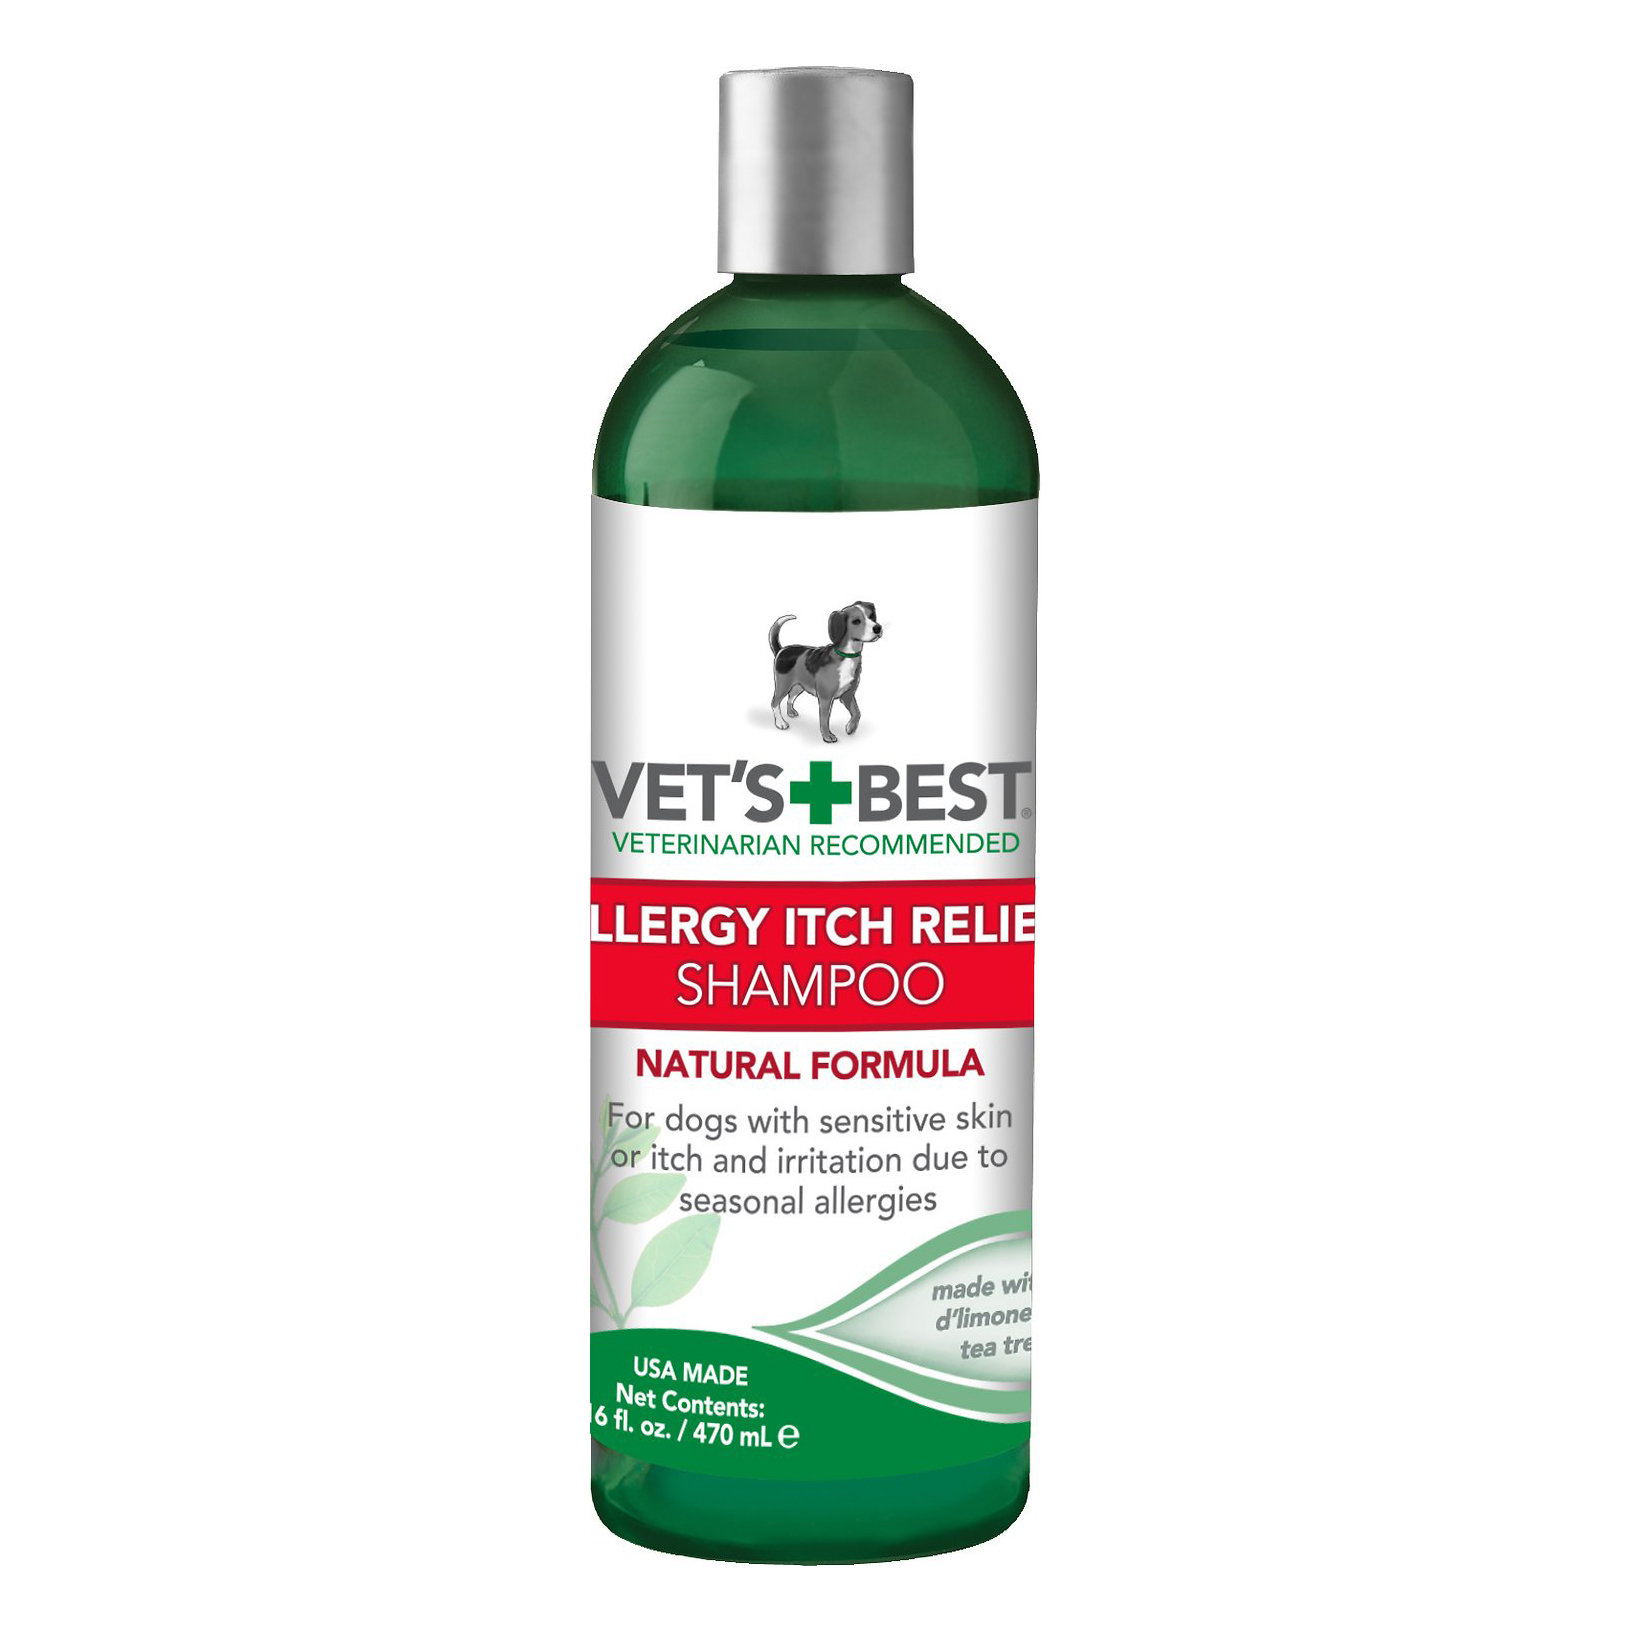 vets-best-allergy-itch-relief-shampoo-for-dogs